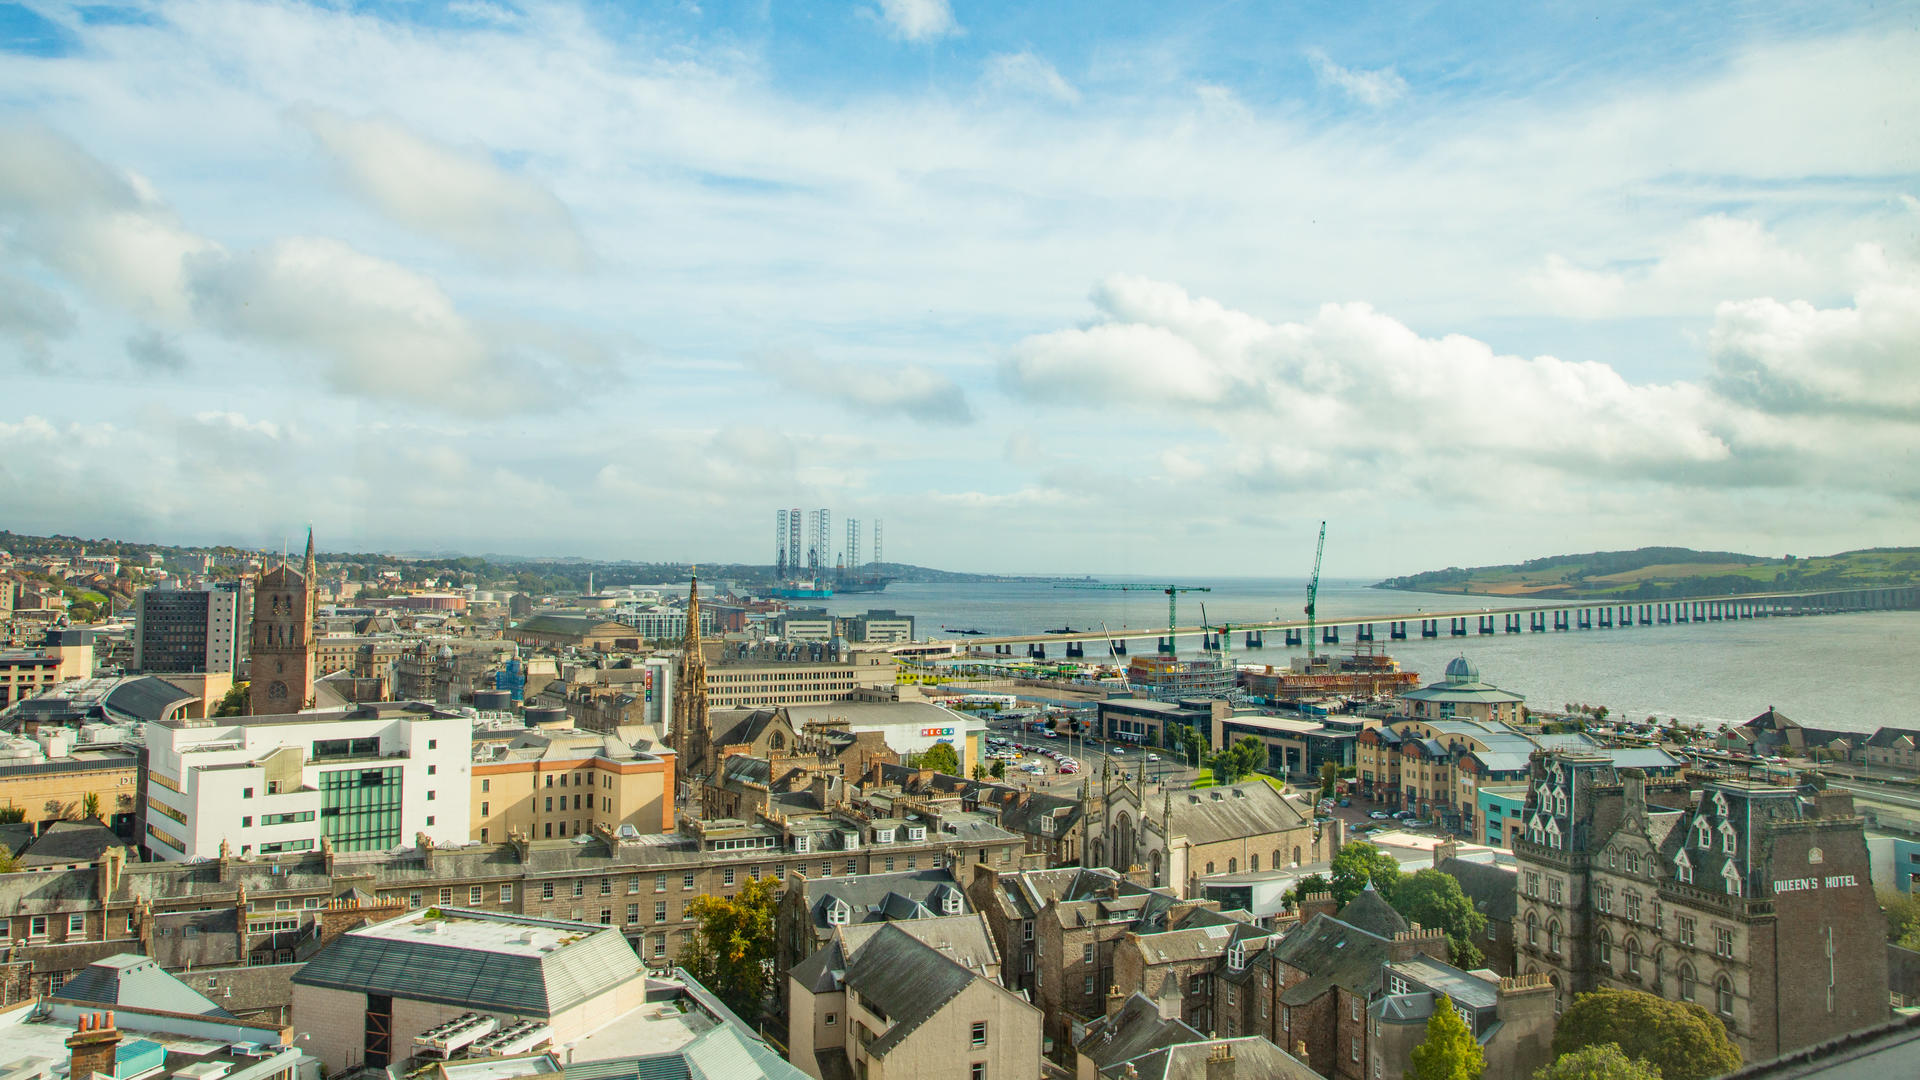 A view of Dundee City Centre from the roof of the University's Tower Building